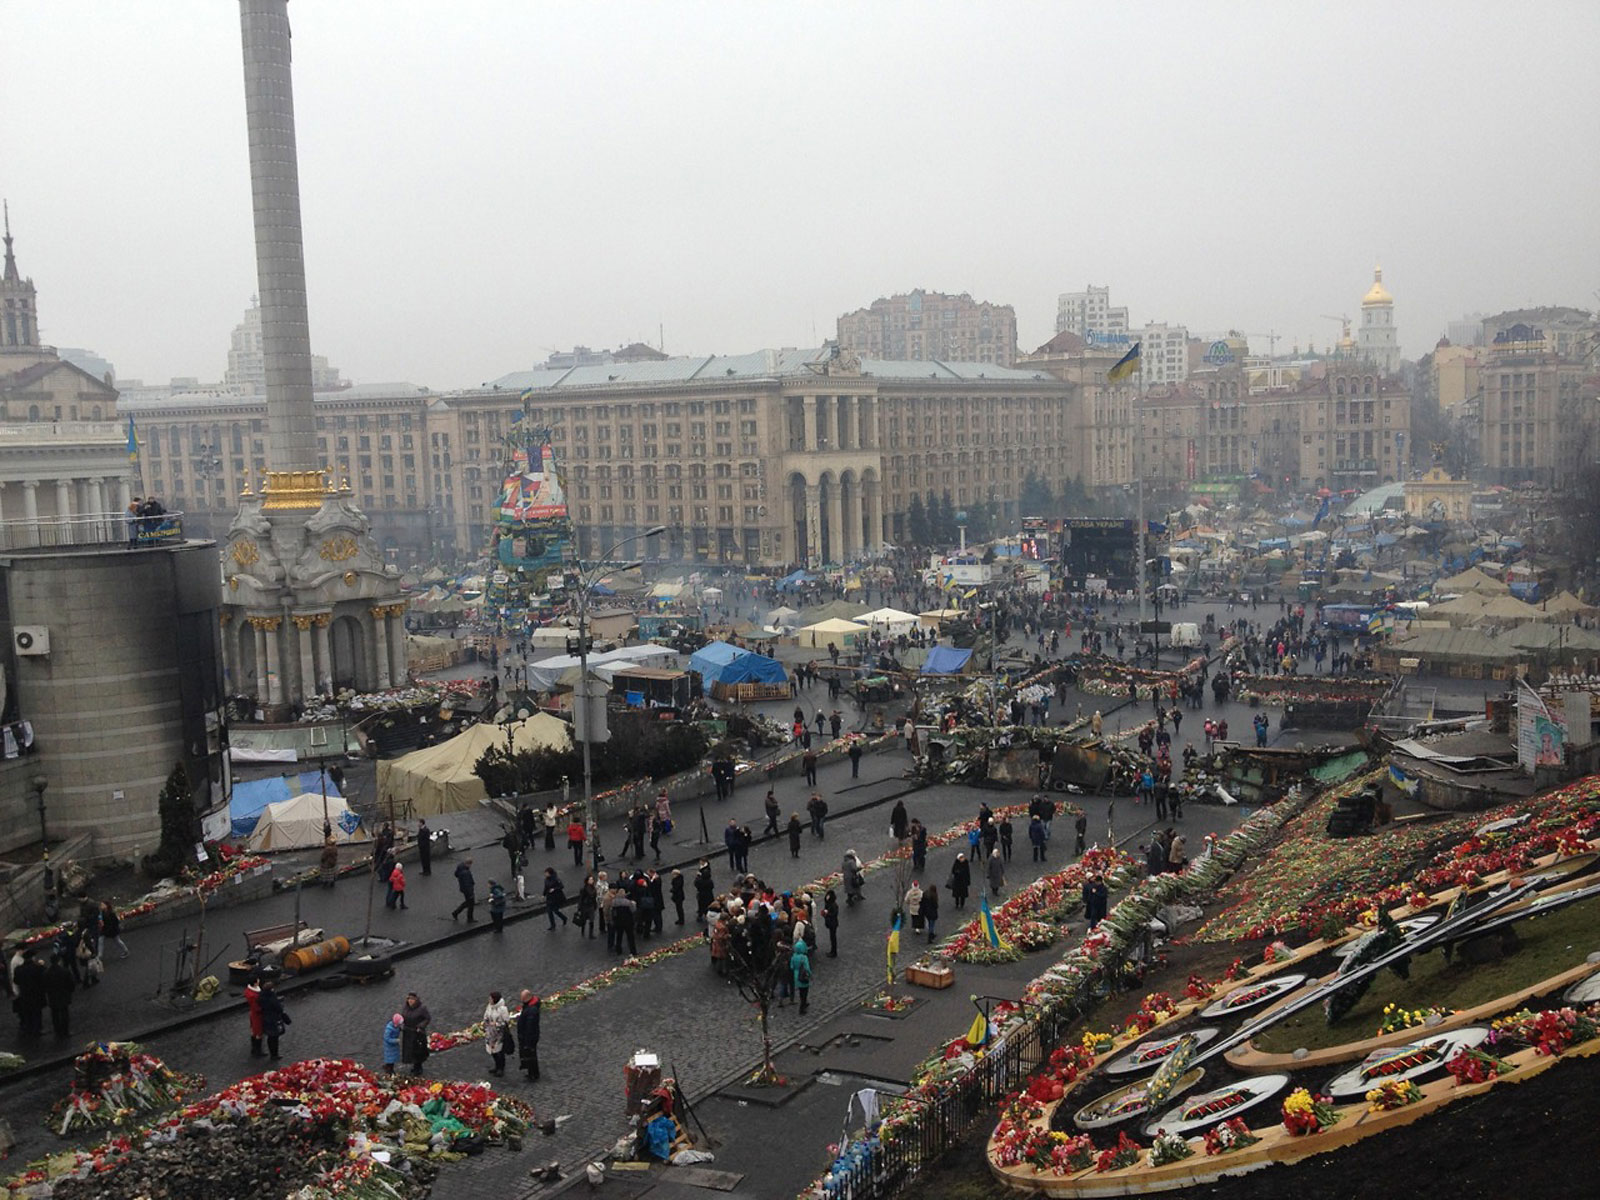 The Maidan: Kiev's Independence Square, March 6, 2014.